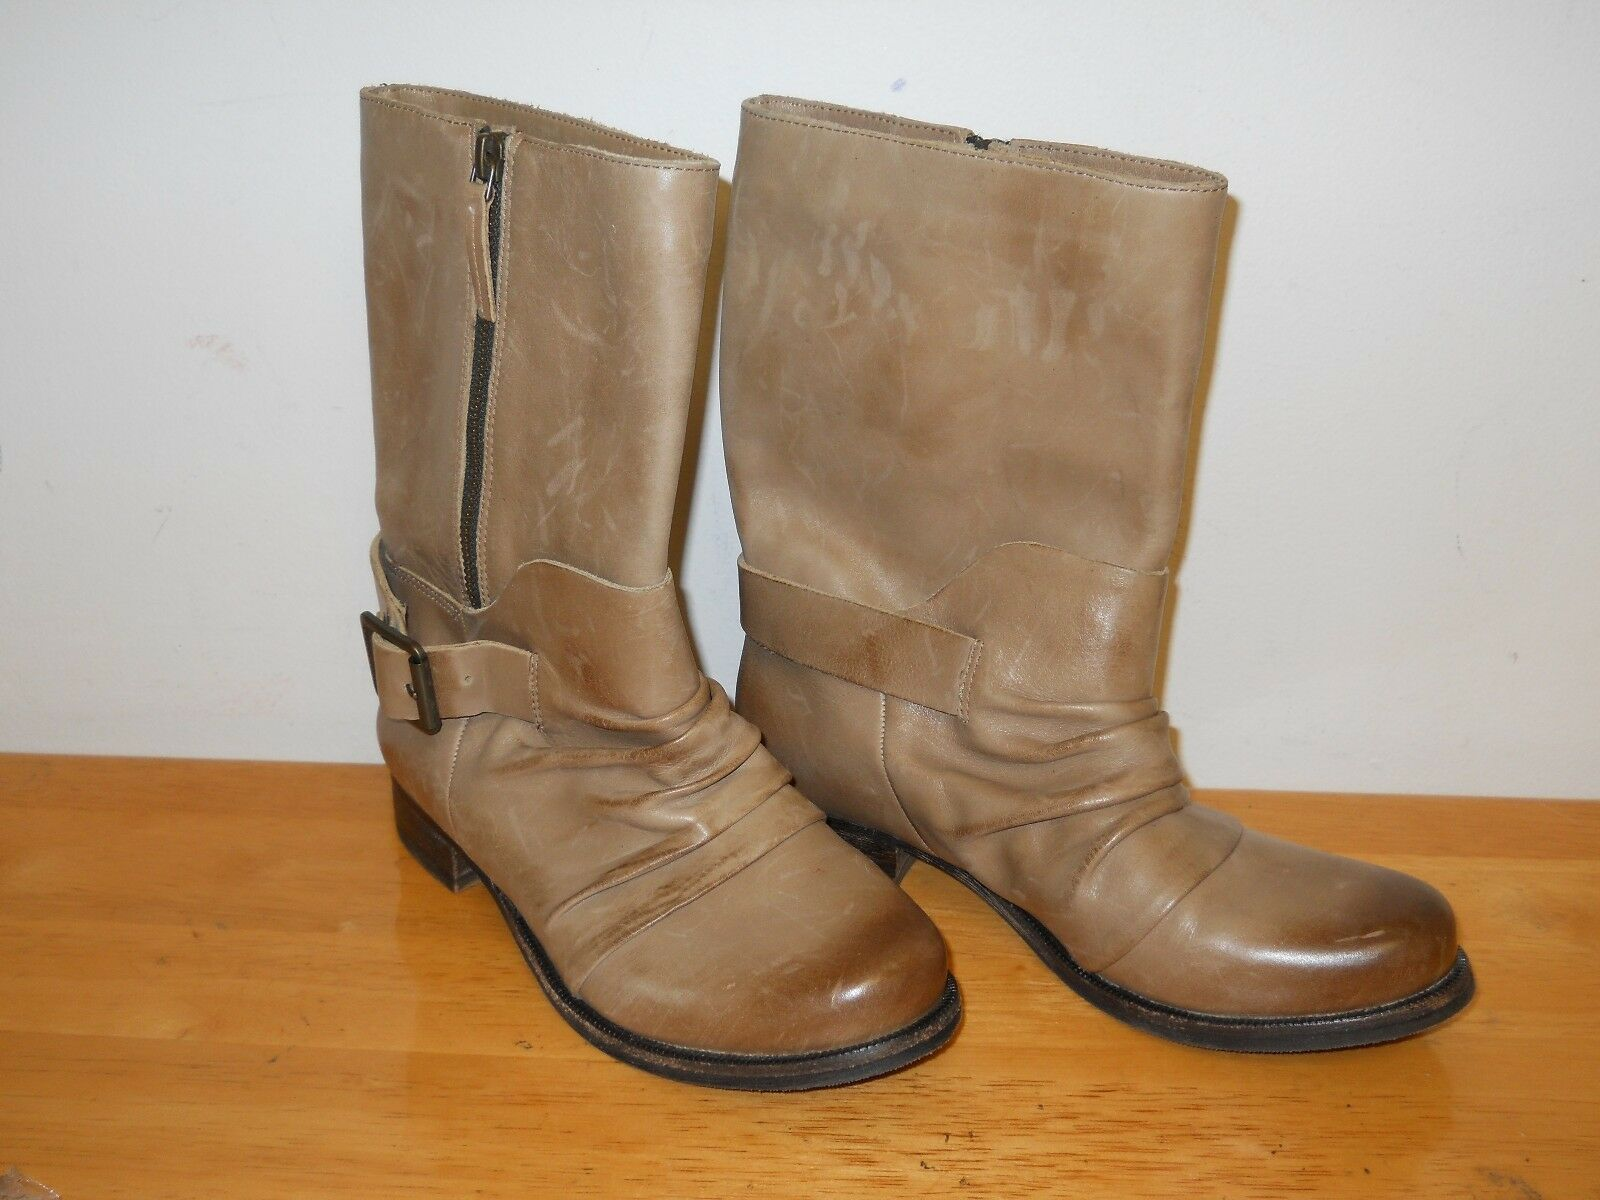 Vince Camuto NEU Damenschuhe Shada Light Braun Stiefel 5 M Schuhes NWOB Distressed